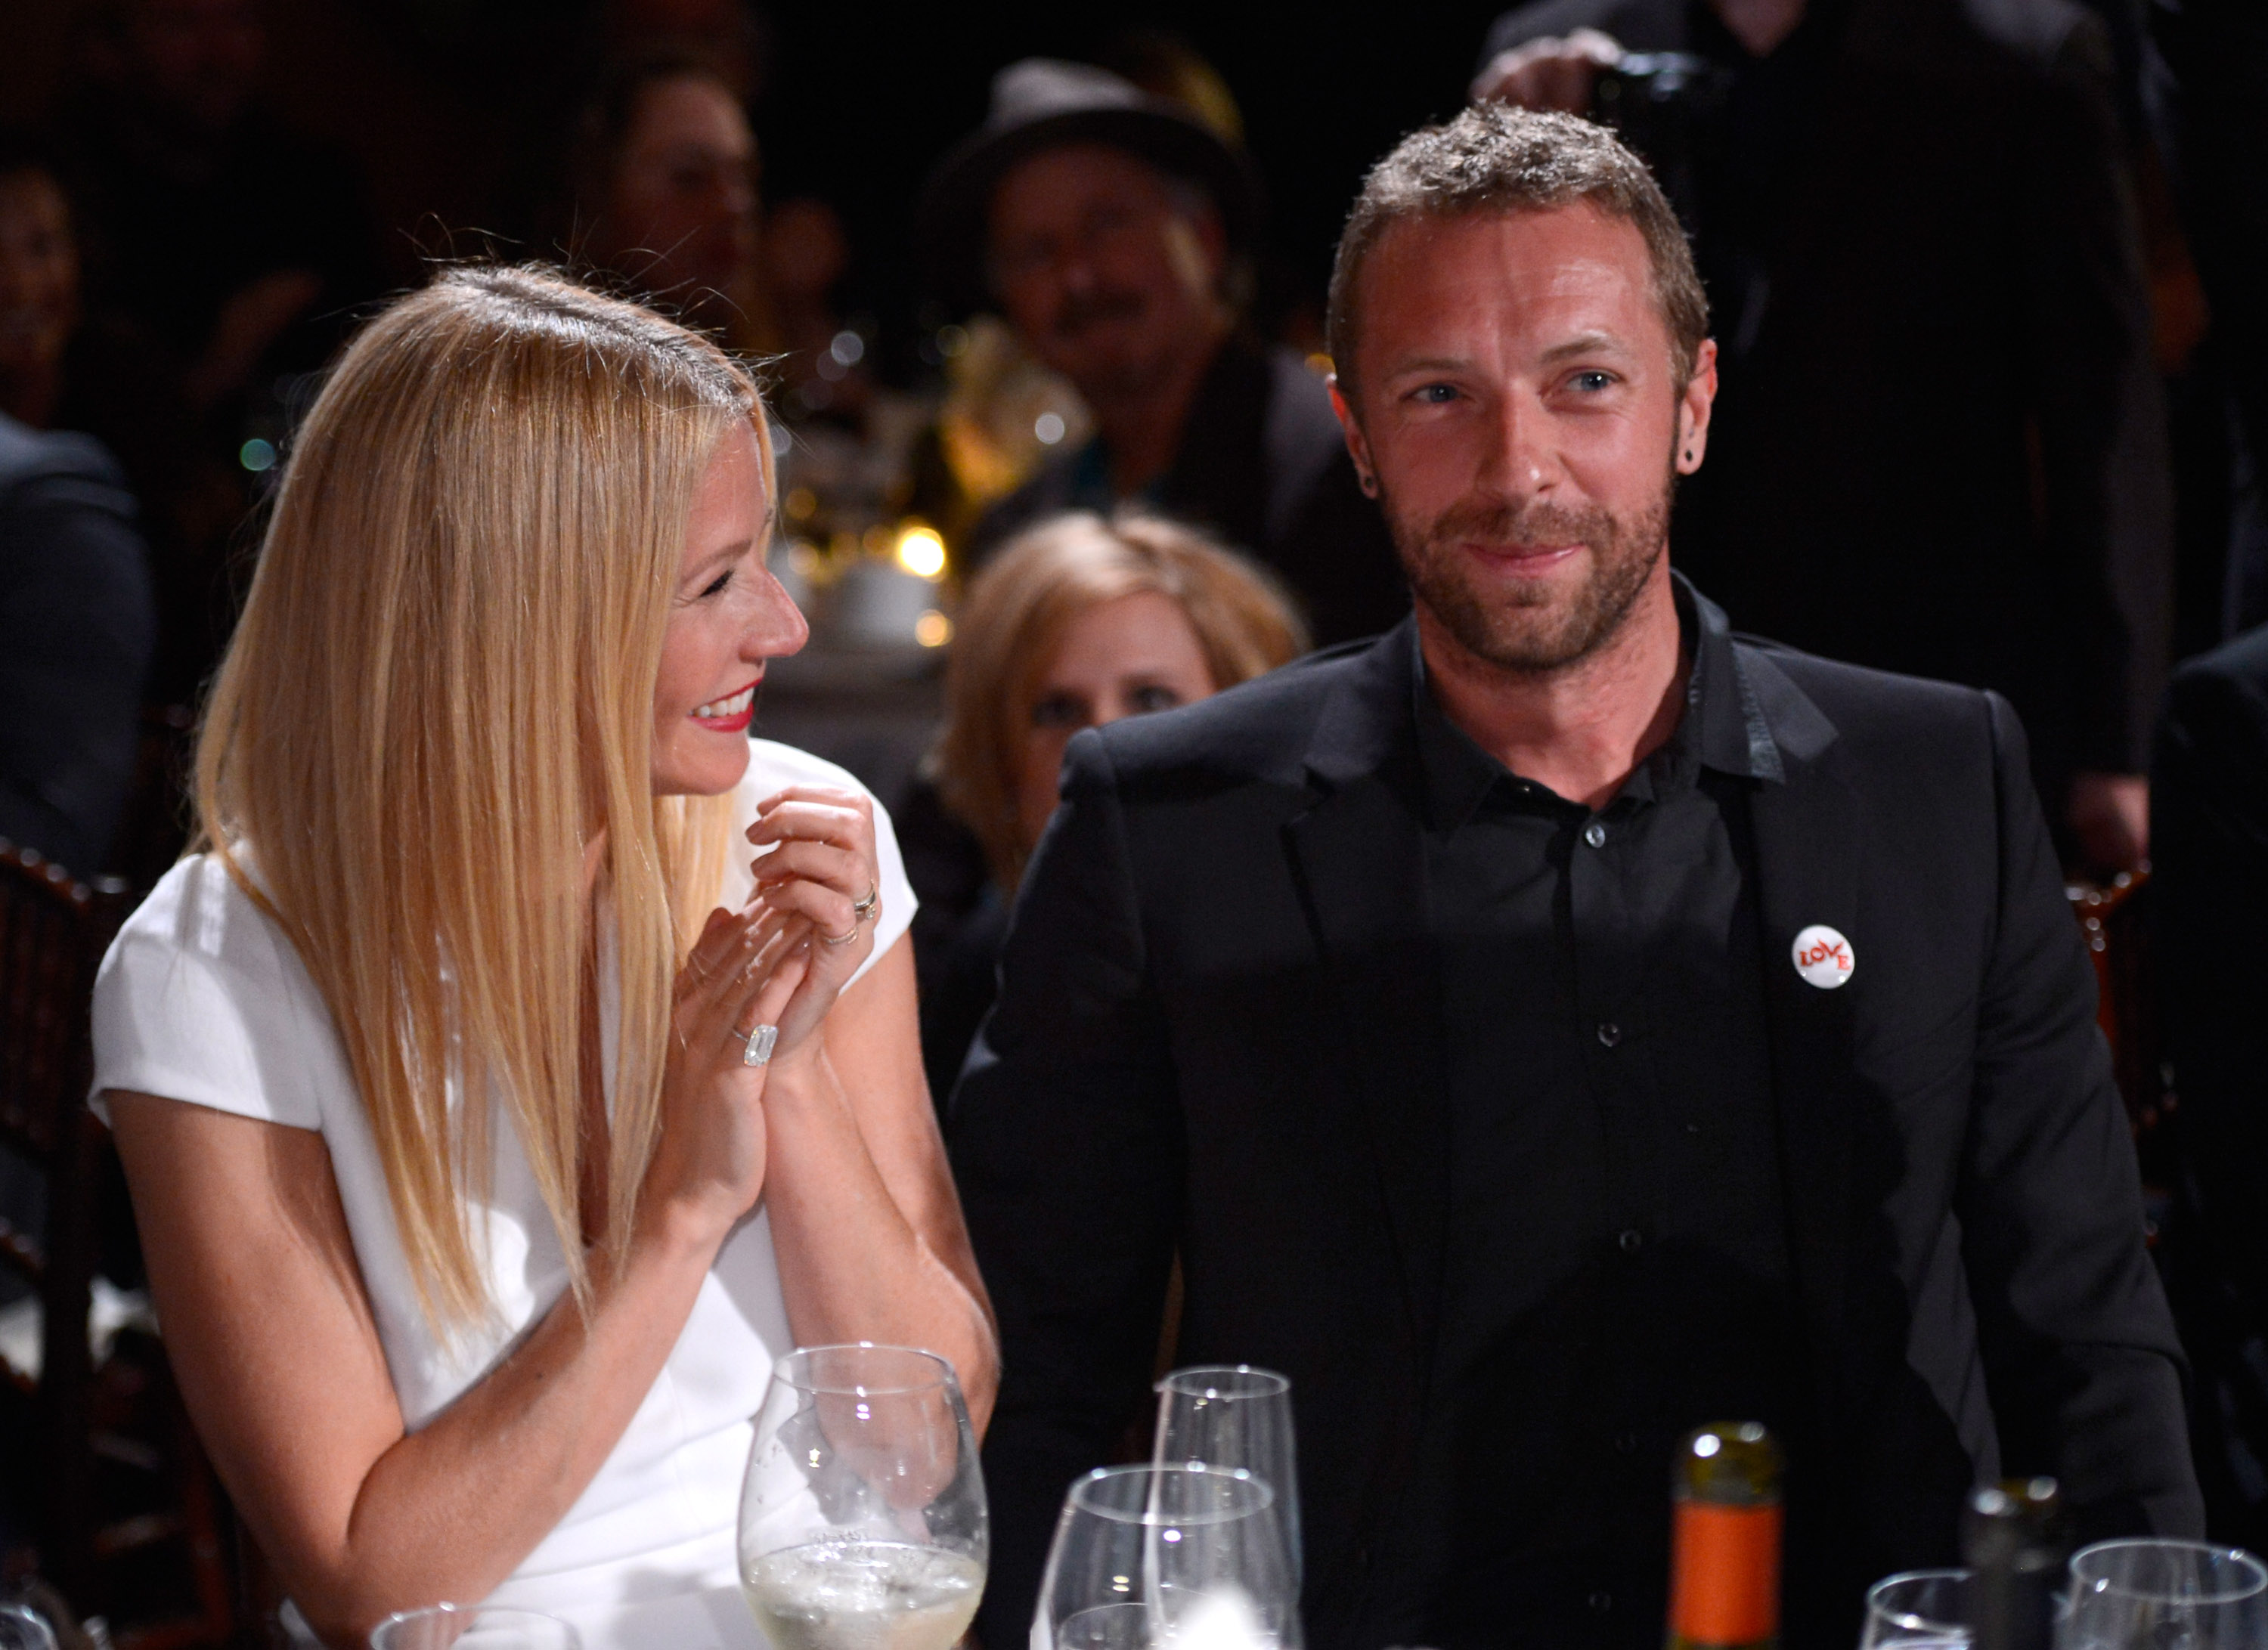 Gwyneth Paltrow and Chris Martin at Montage Beverly Hills on January 11, 2014 in Beverly Hills, California.